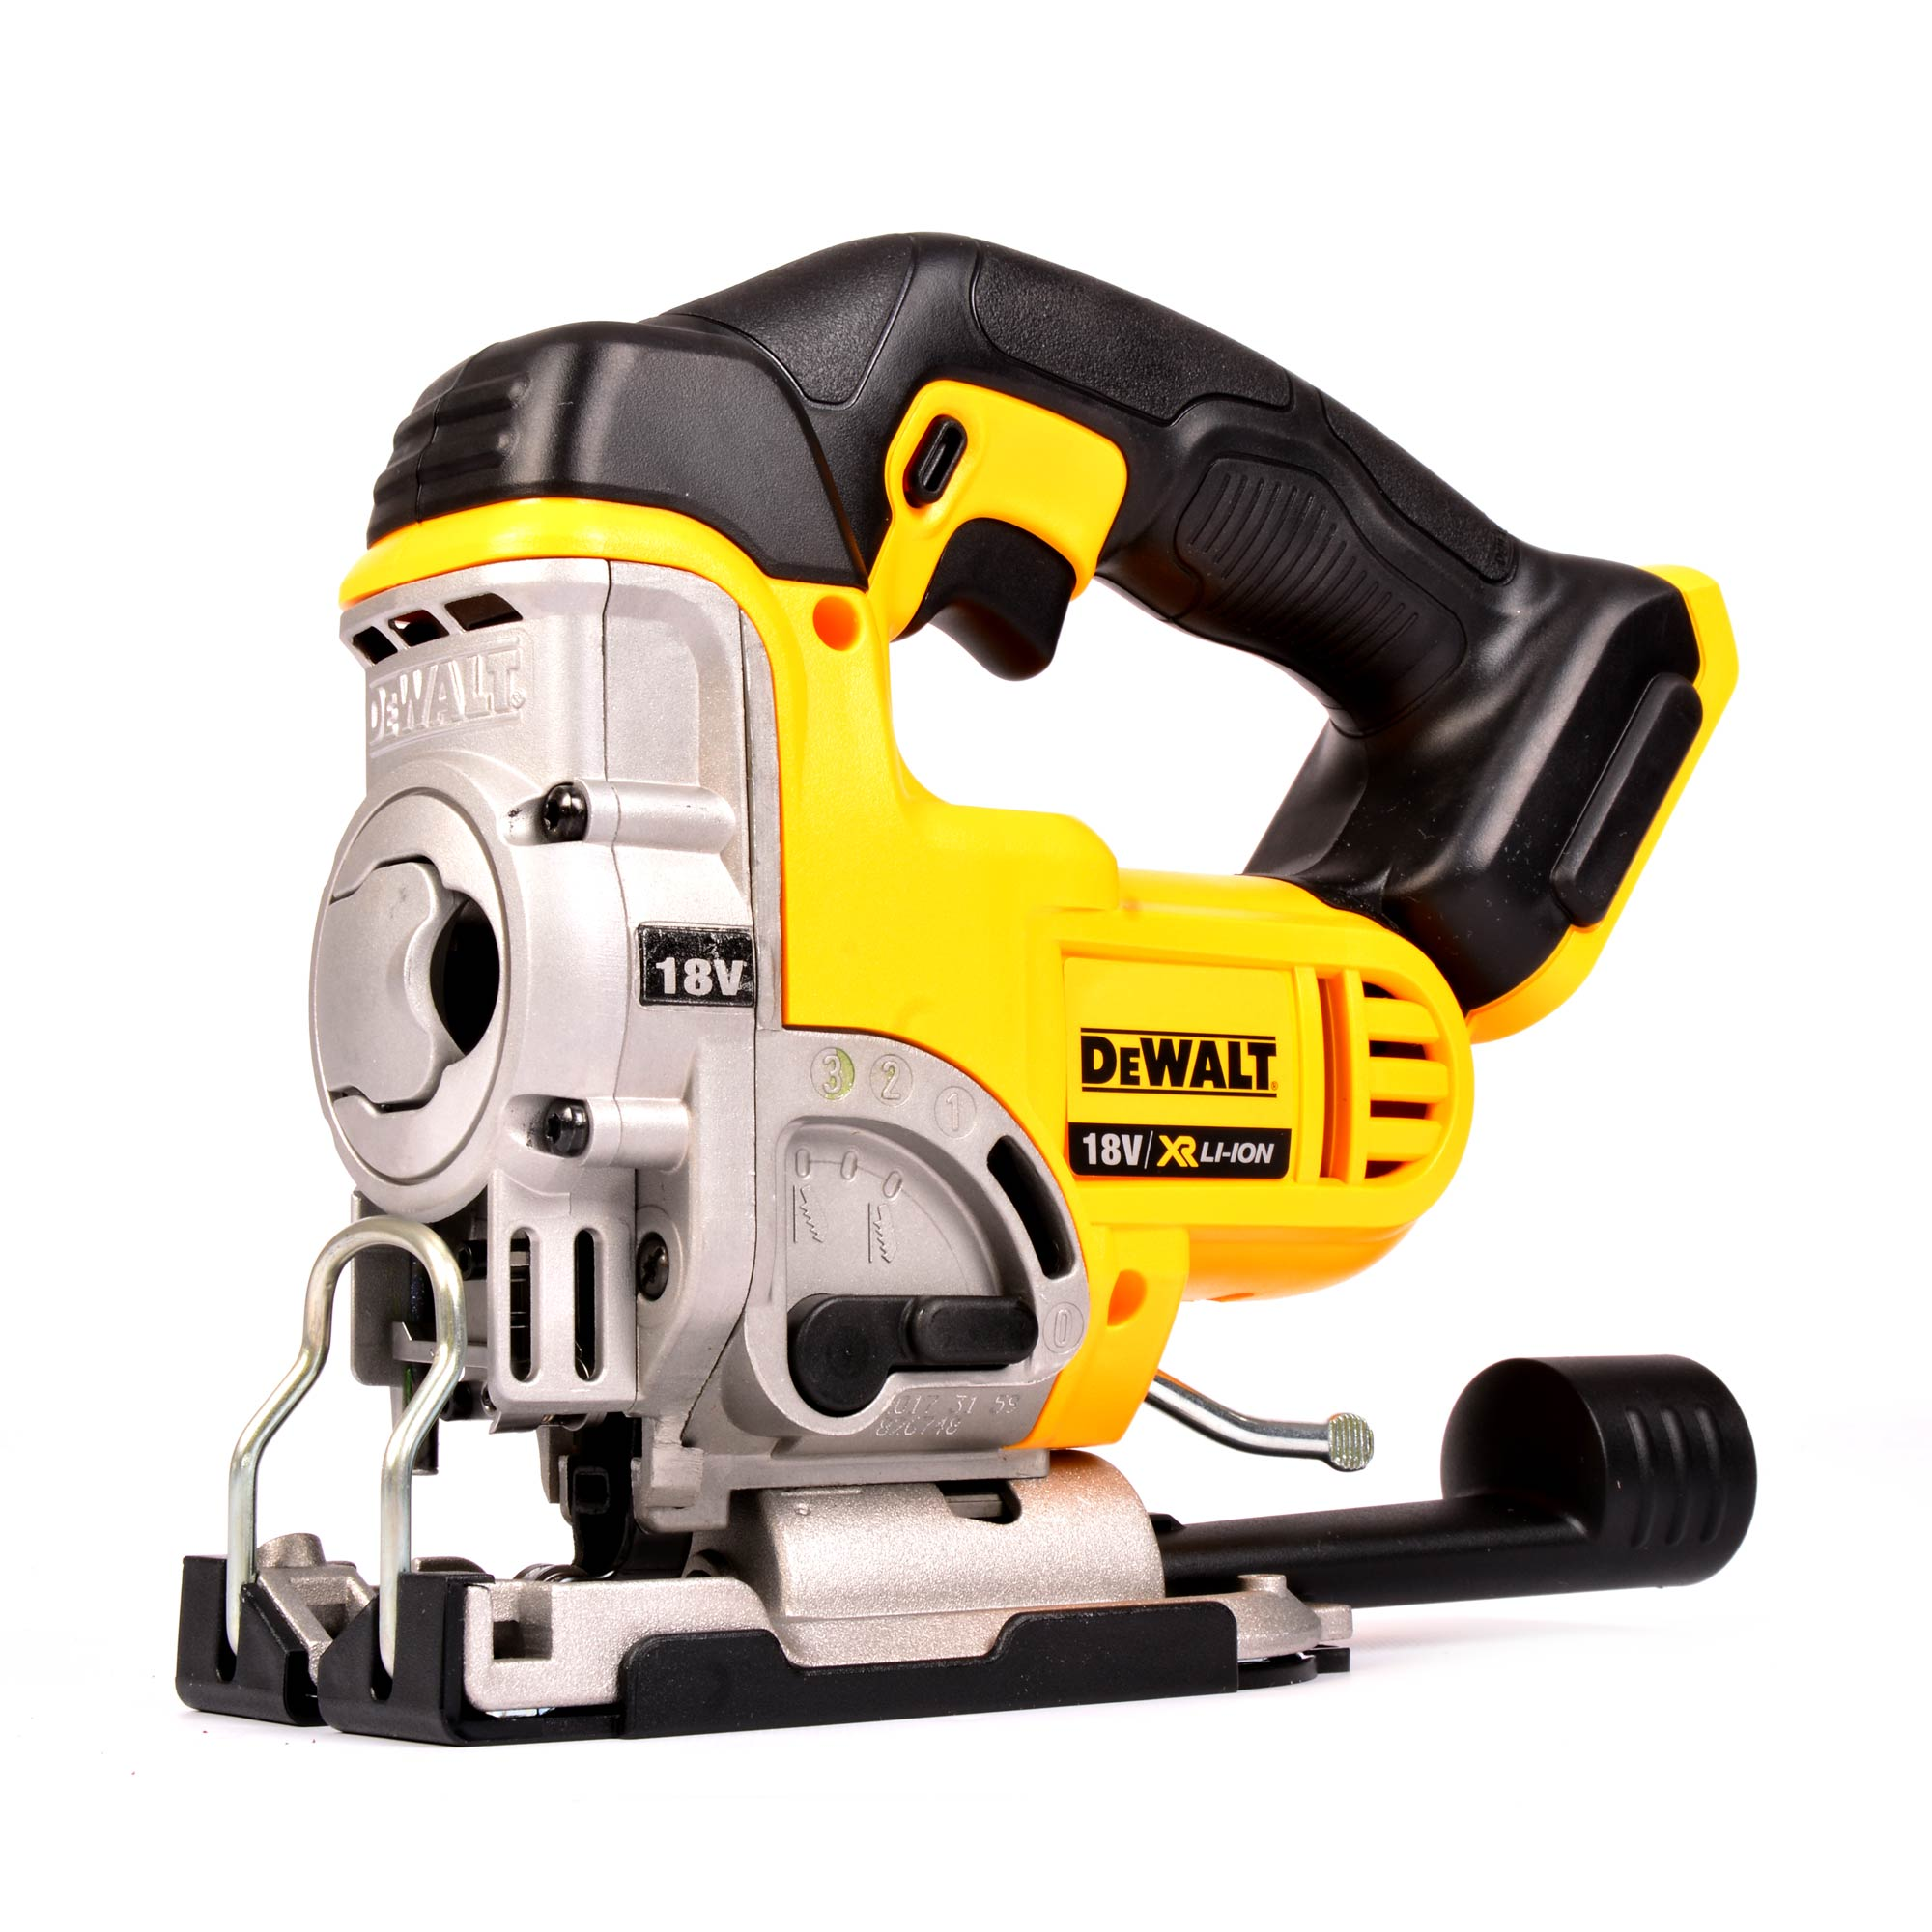 dewalt dcs331 dewalt 18v lithium ion cordless jigsaw. Black Bedroom Furniture Sets. Home Design Ideas